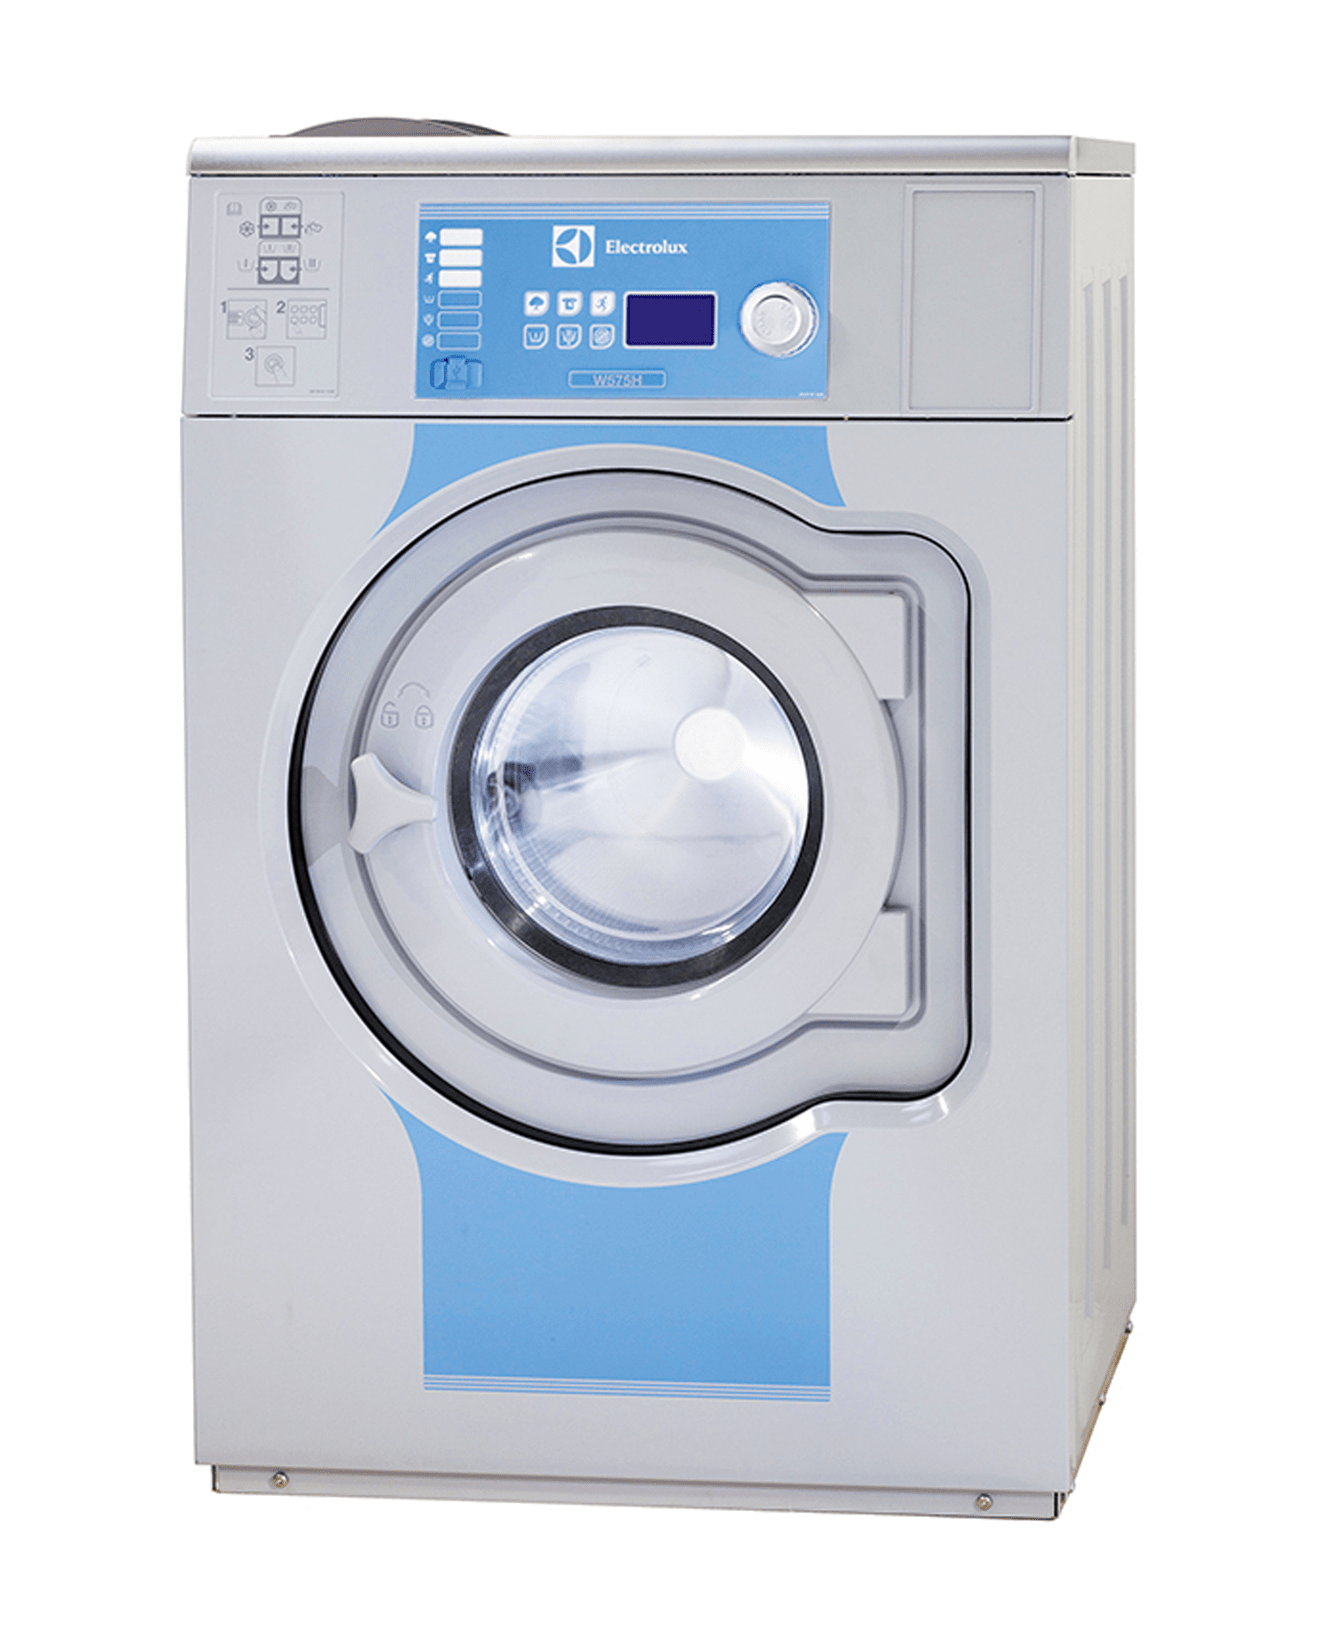 Electrolux manuals seekersoftmore.